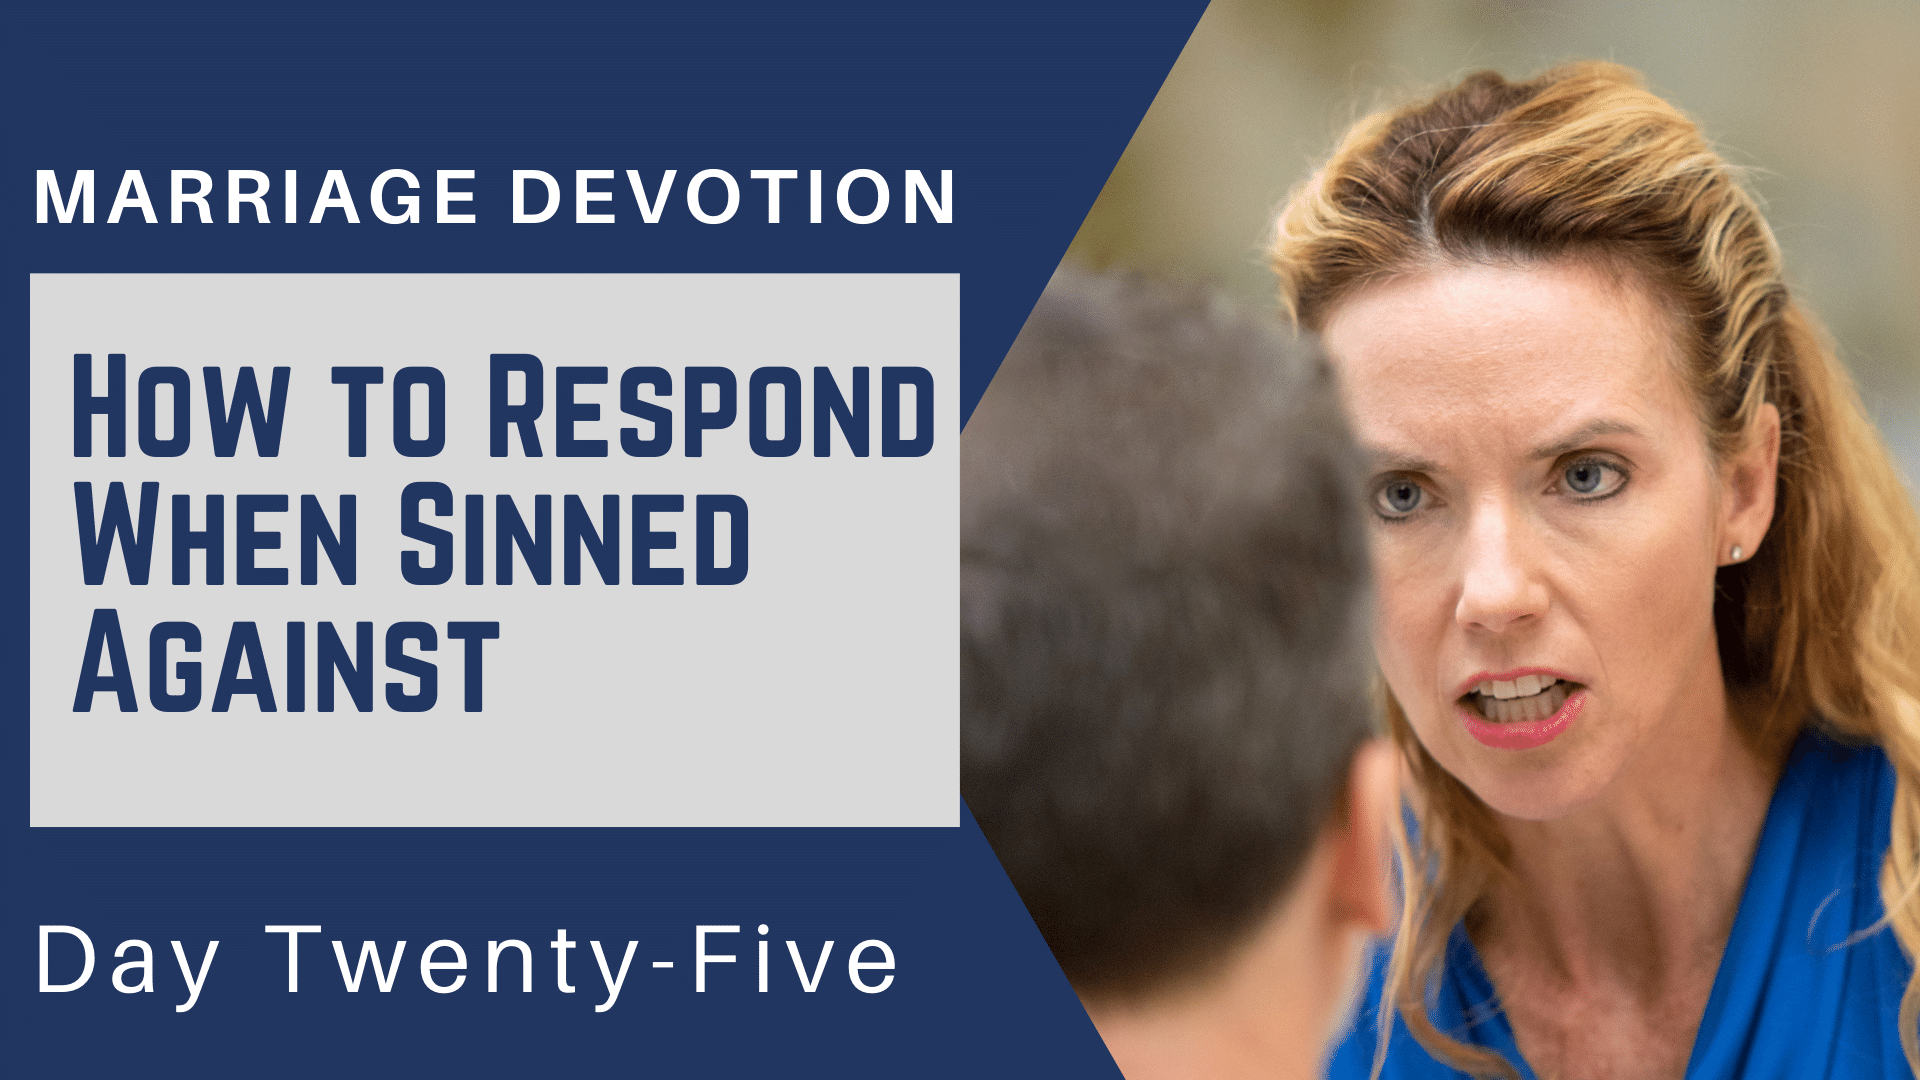 Marriage Devotion Day 25 – How to Respond When Sinned Against